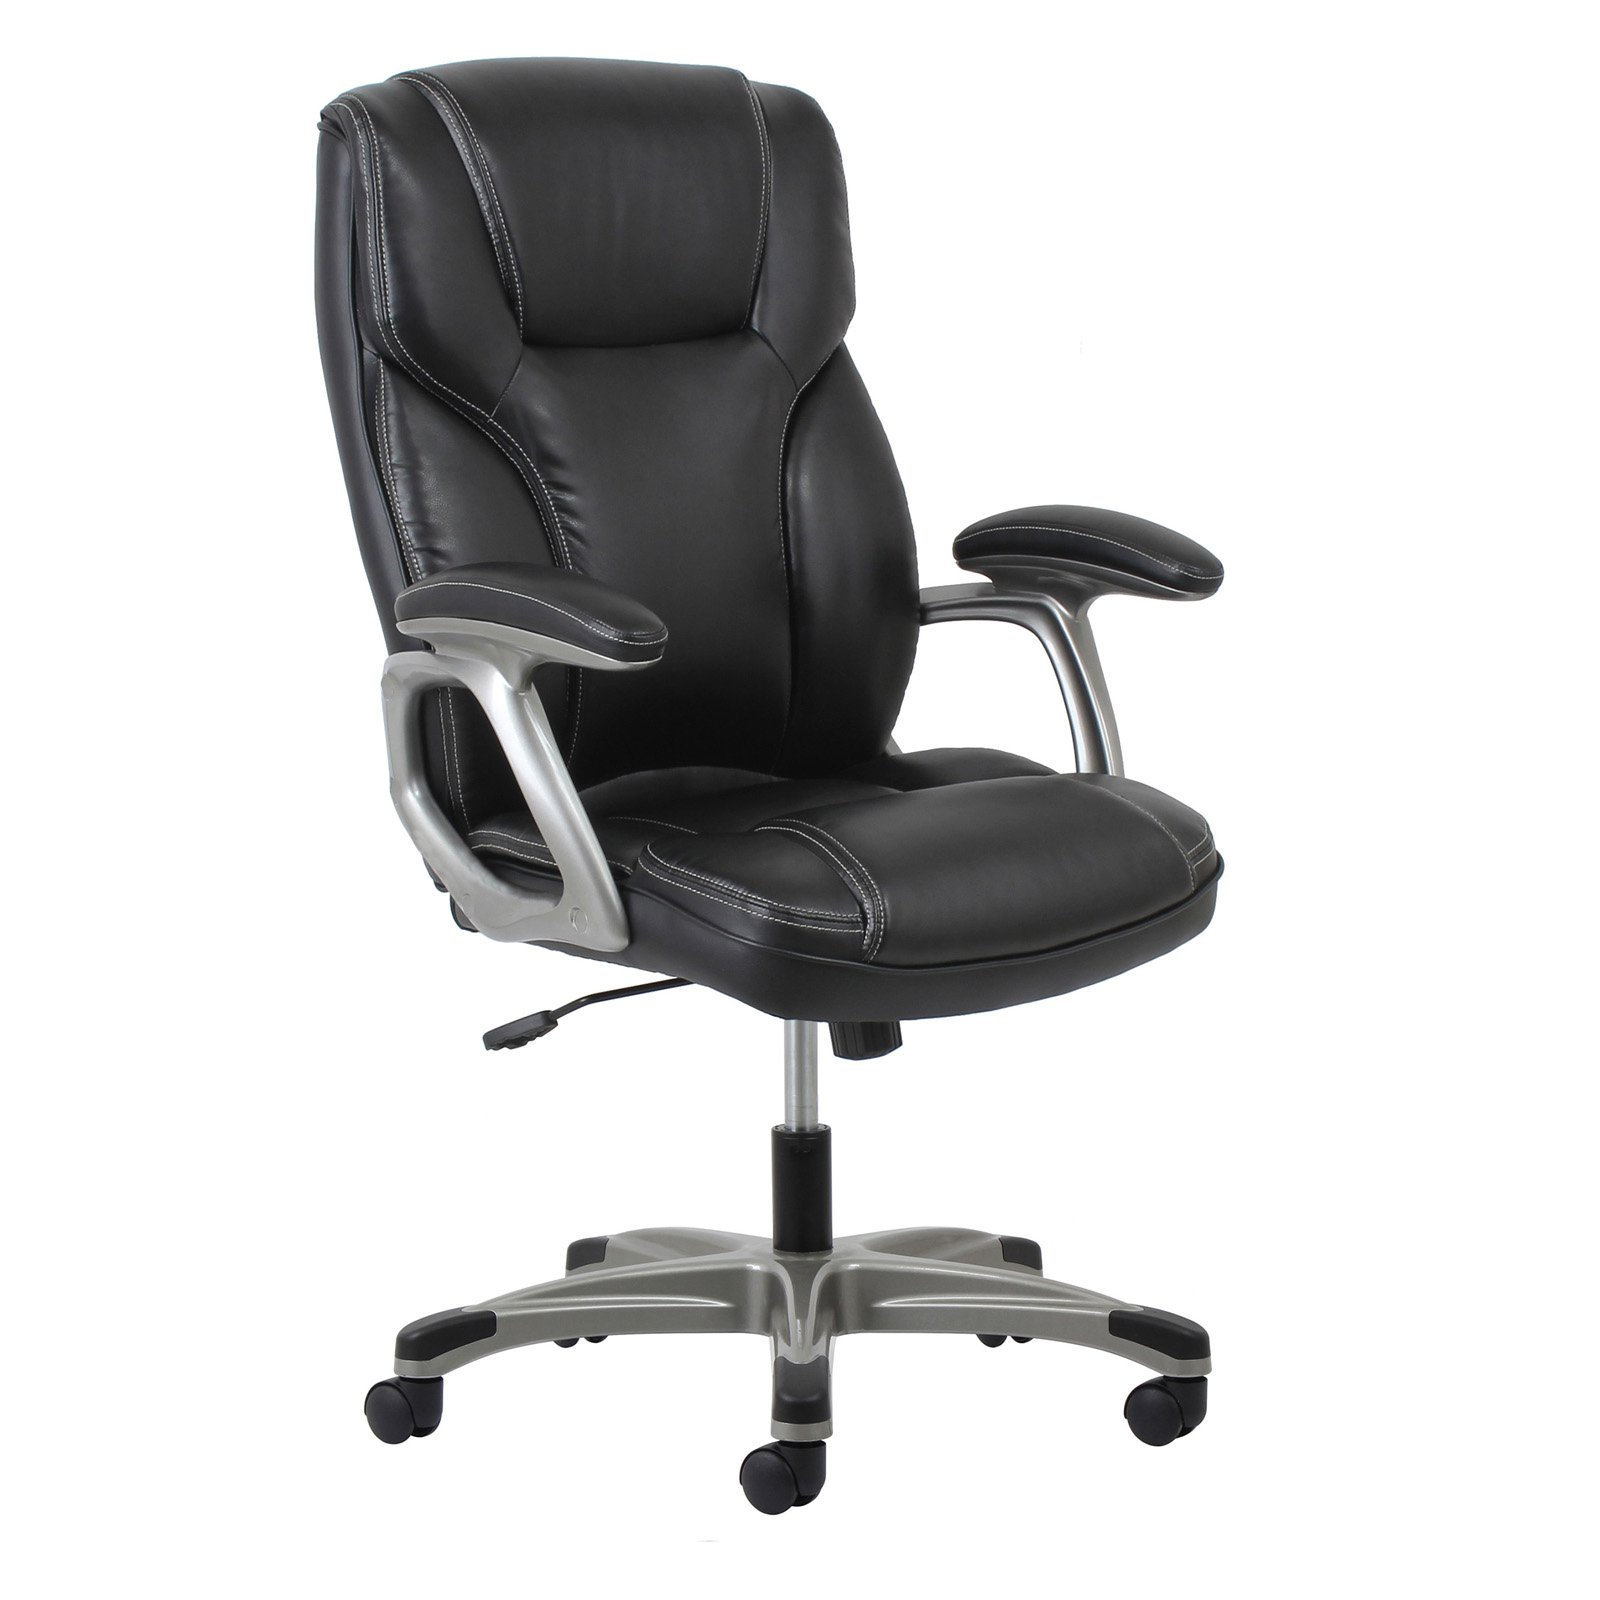 OFM Essentials High Back Leather Executive Chair